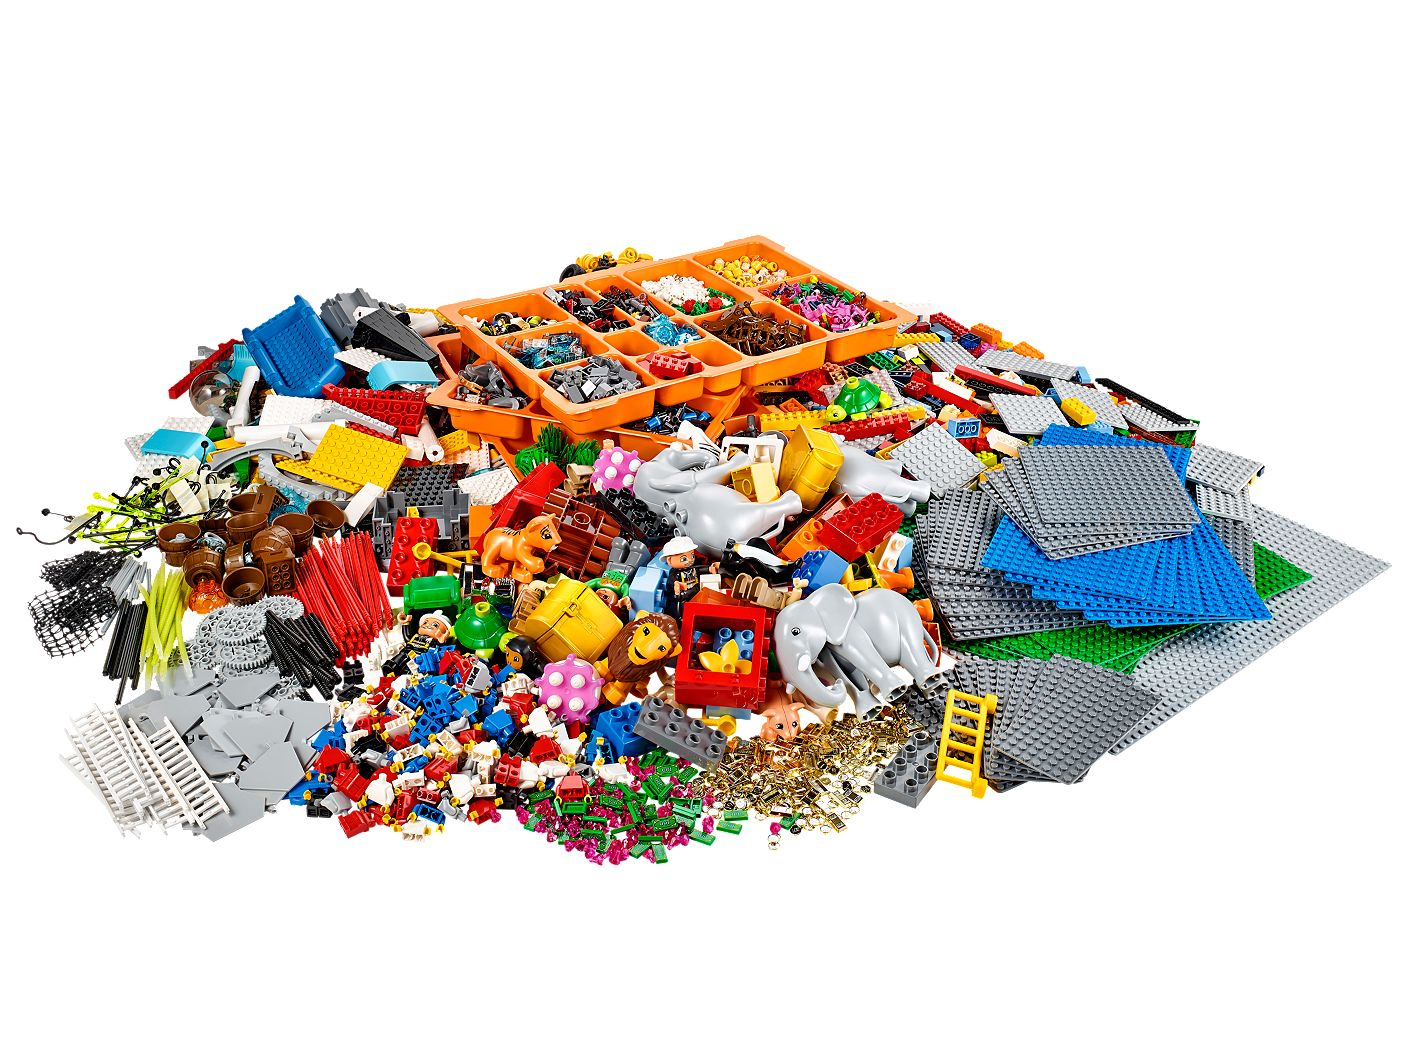 Welche Sets brauche ich: LEGO® SERIOUS PLAY® Landscape and Identity Kit